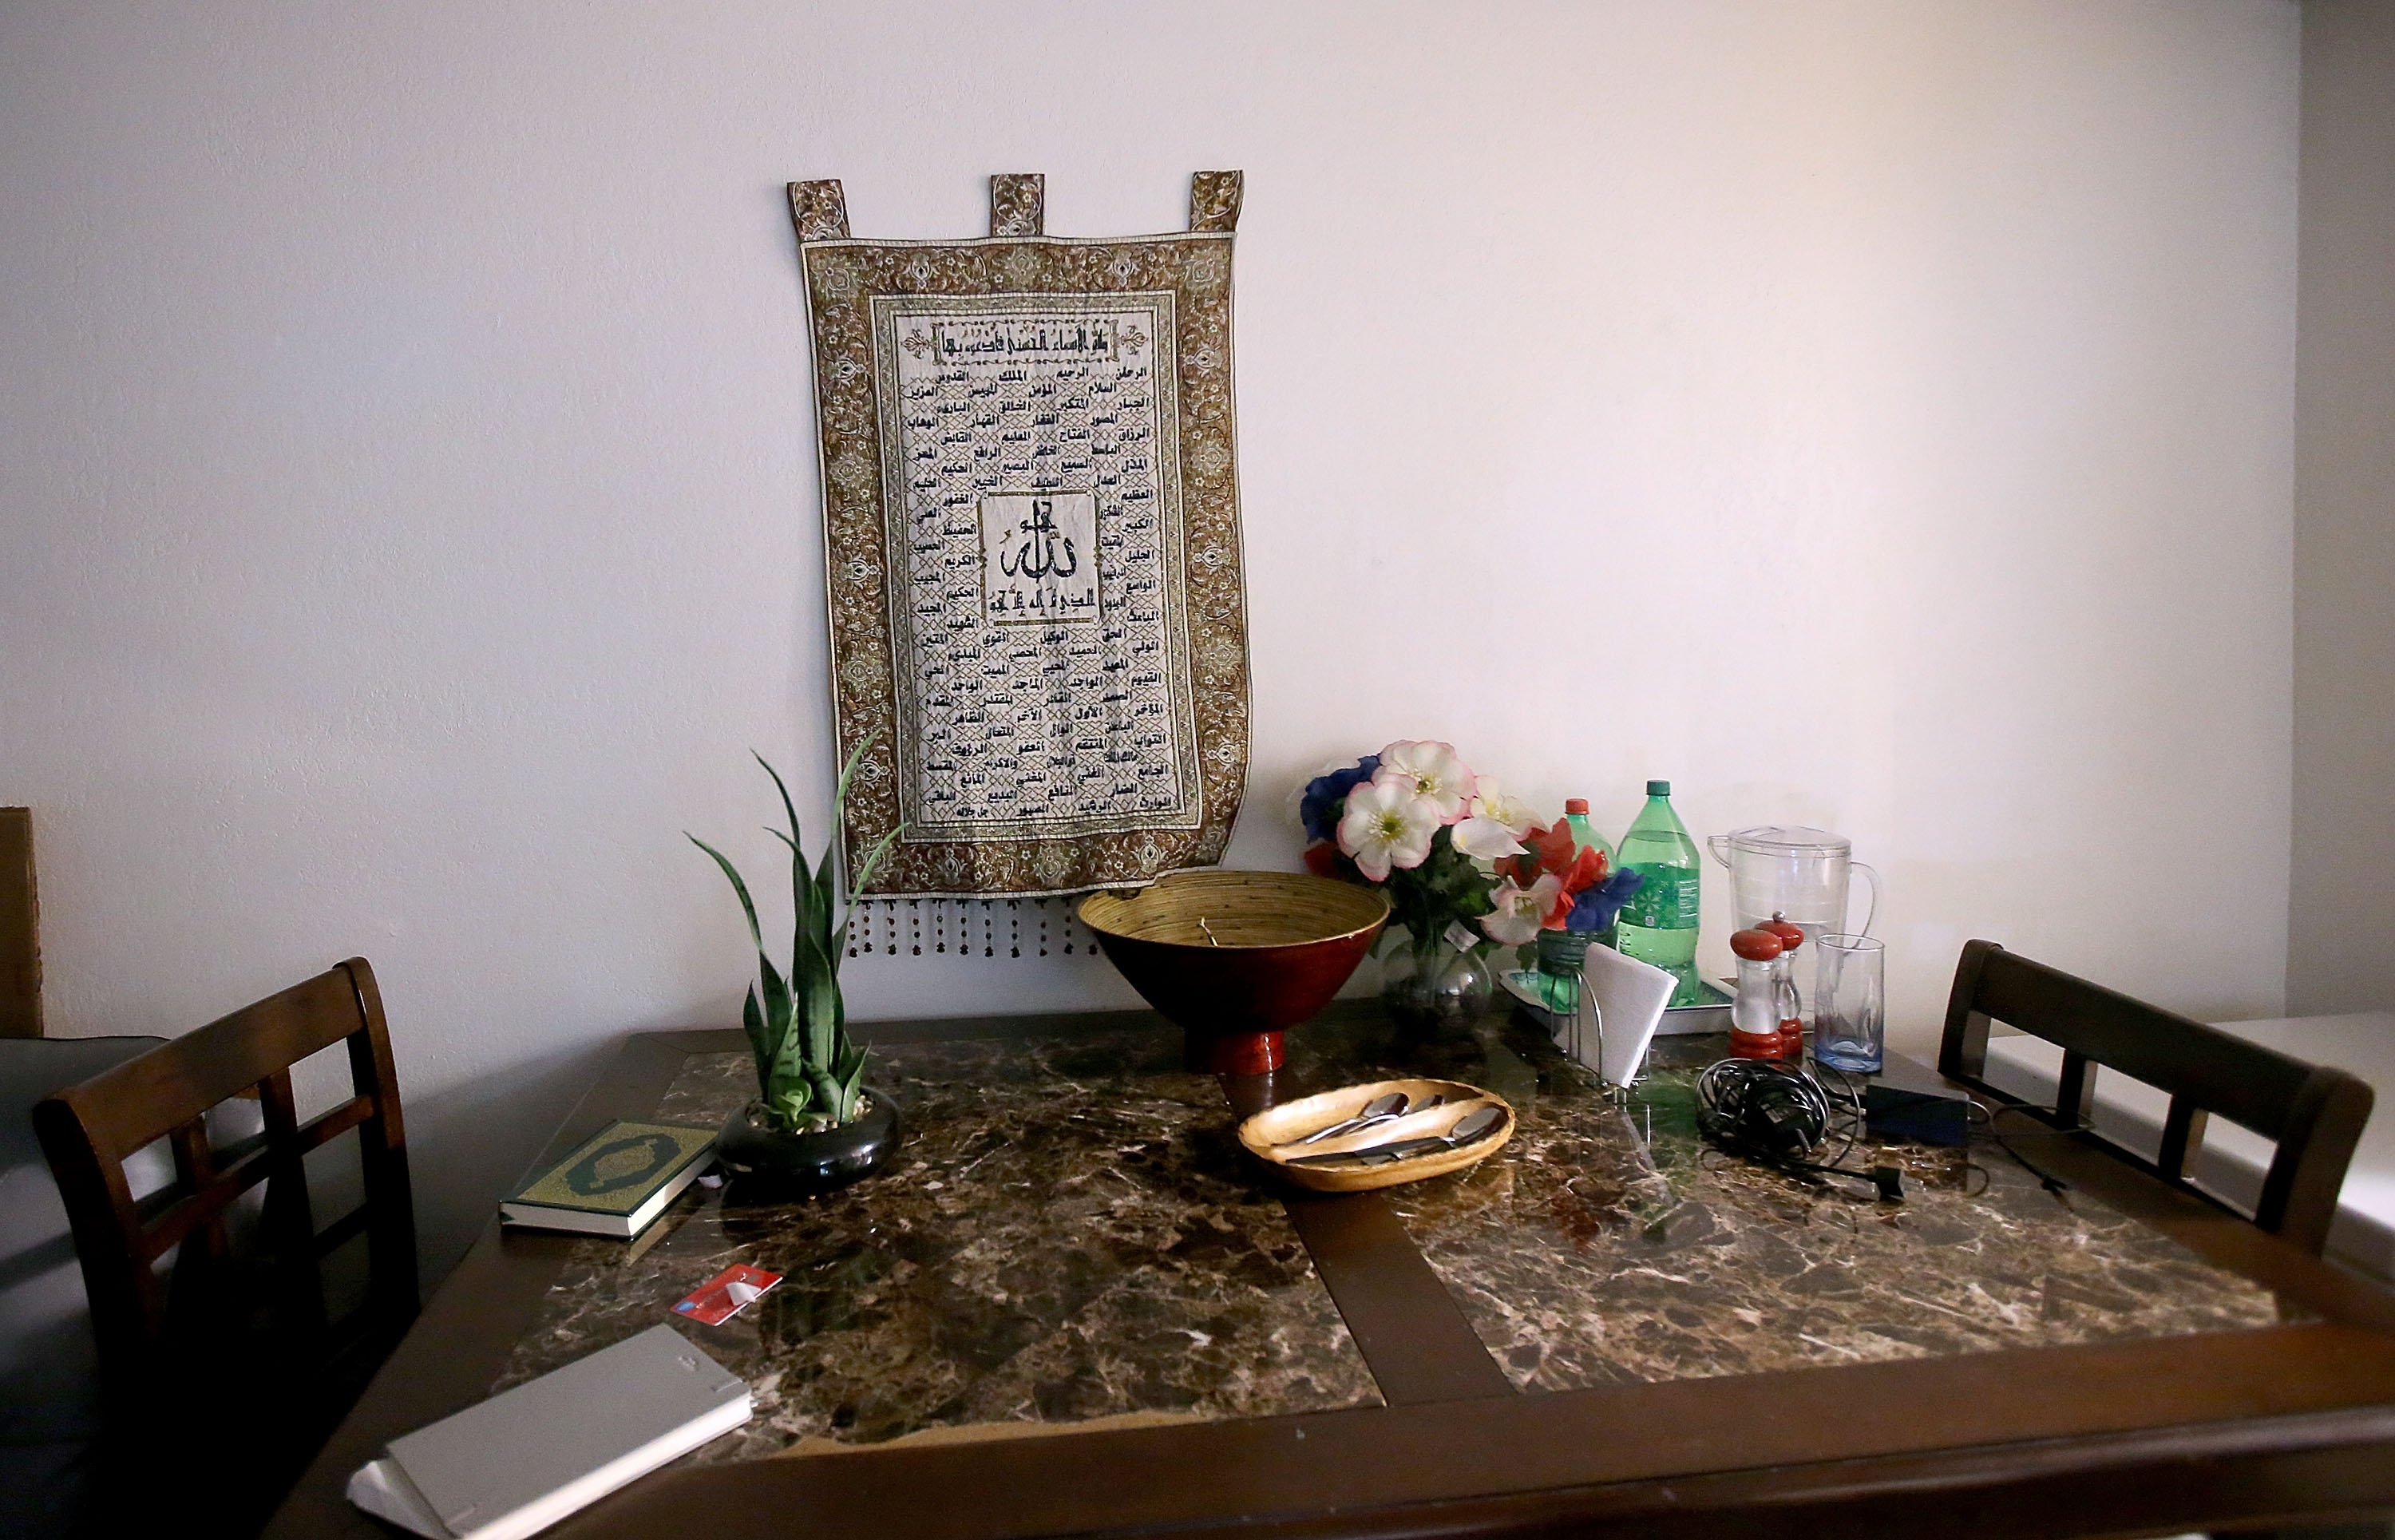 Interior of the home of shooting suspect Syed Farook in San Bernardino, CA on Dec. 4, 2015.